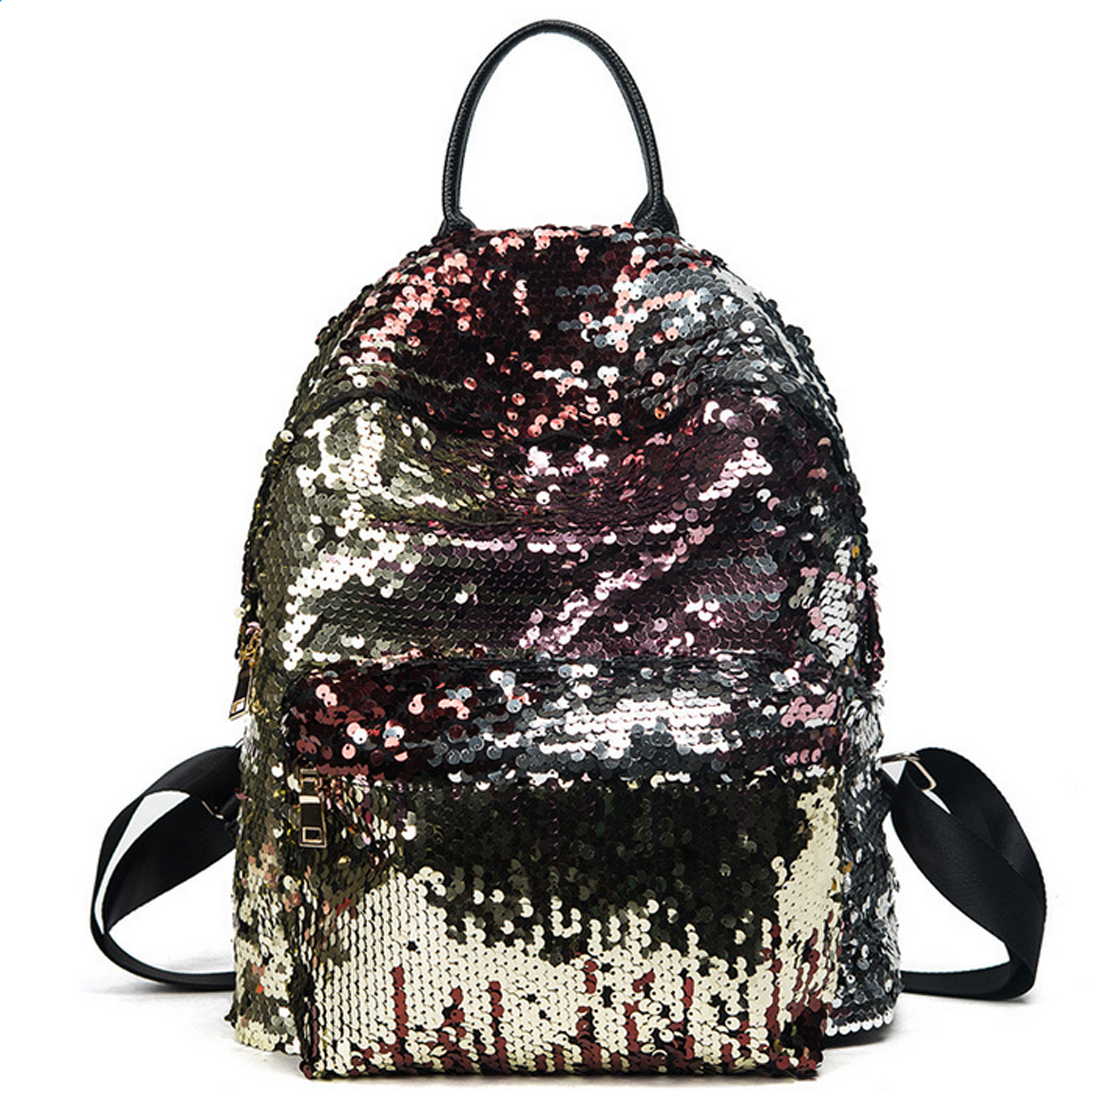 Sfg House Fashion Girls Sequins Backpack 2017 Women Travel Shoulder Bags Casual Unique Backpacks